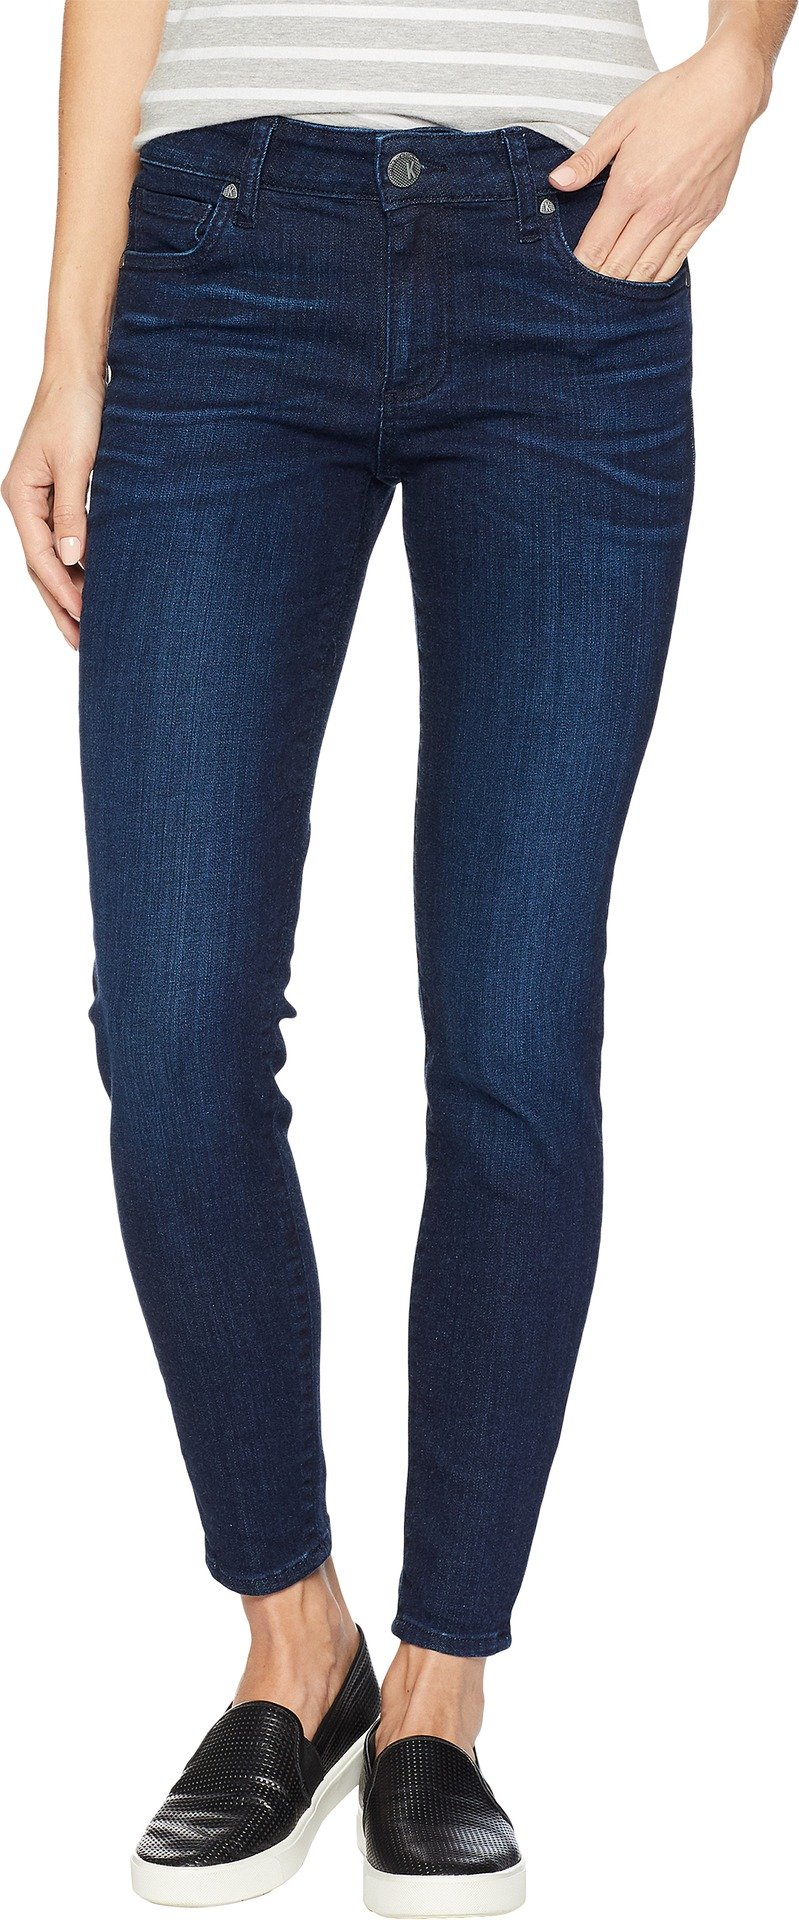 KUT from the Kloth Women's Donna Ankle Skinny Jeans in Influential Influential/Euro Base Wash 10 27